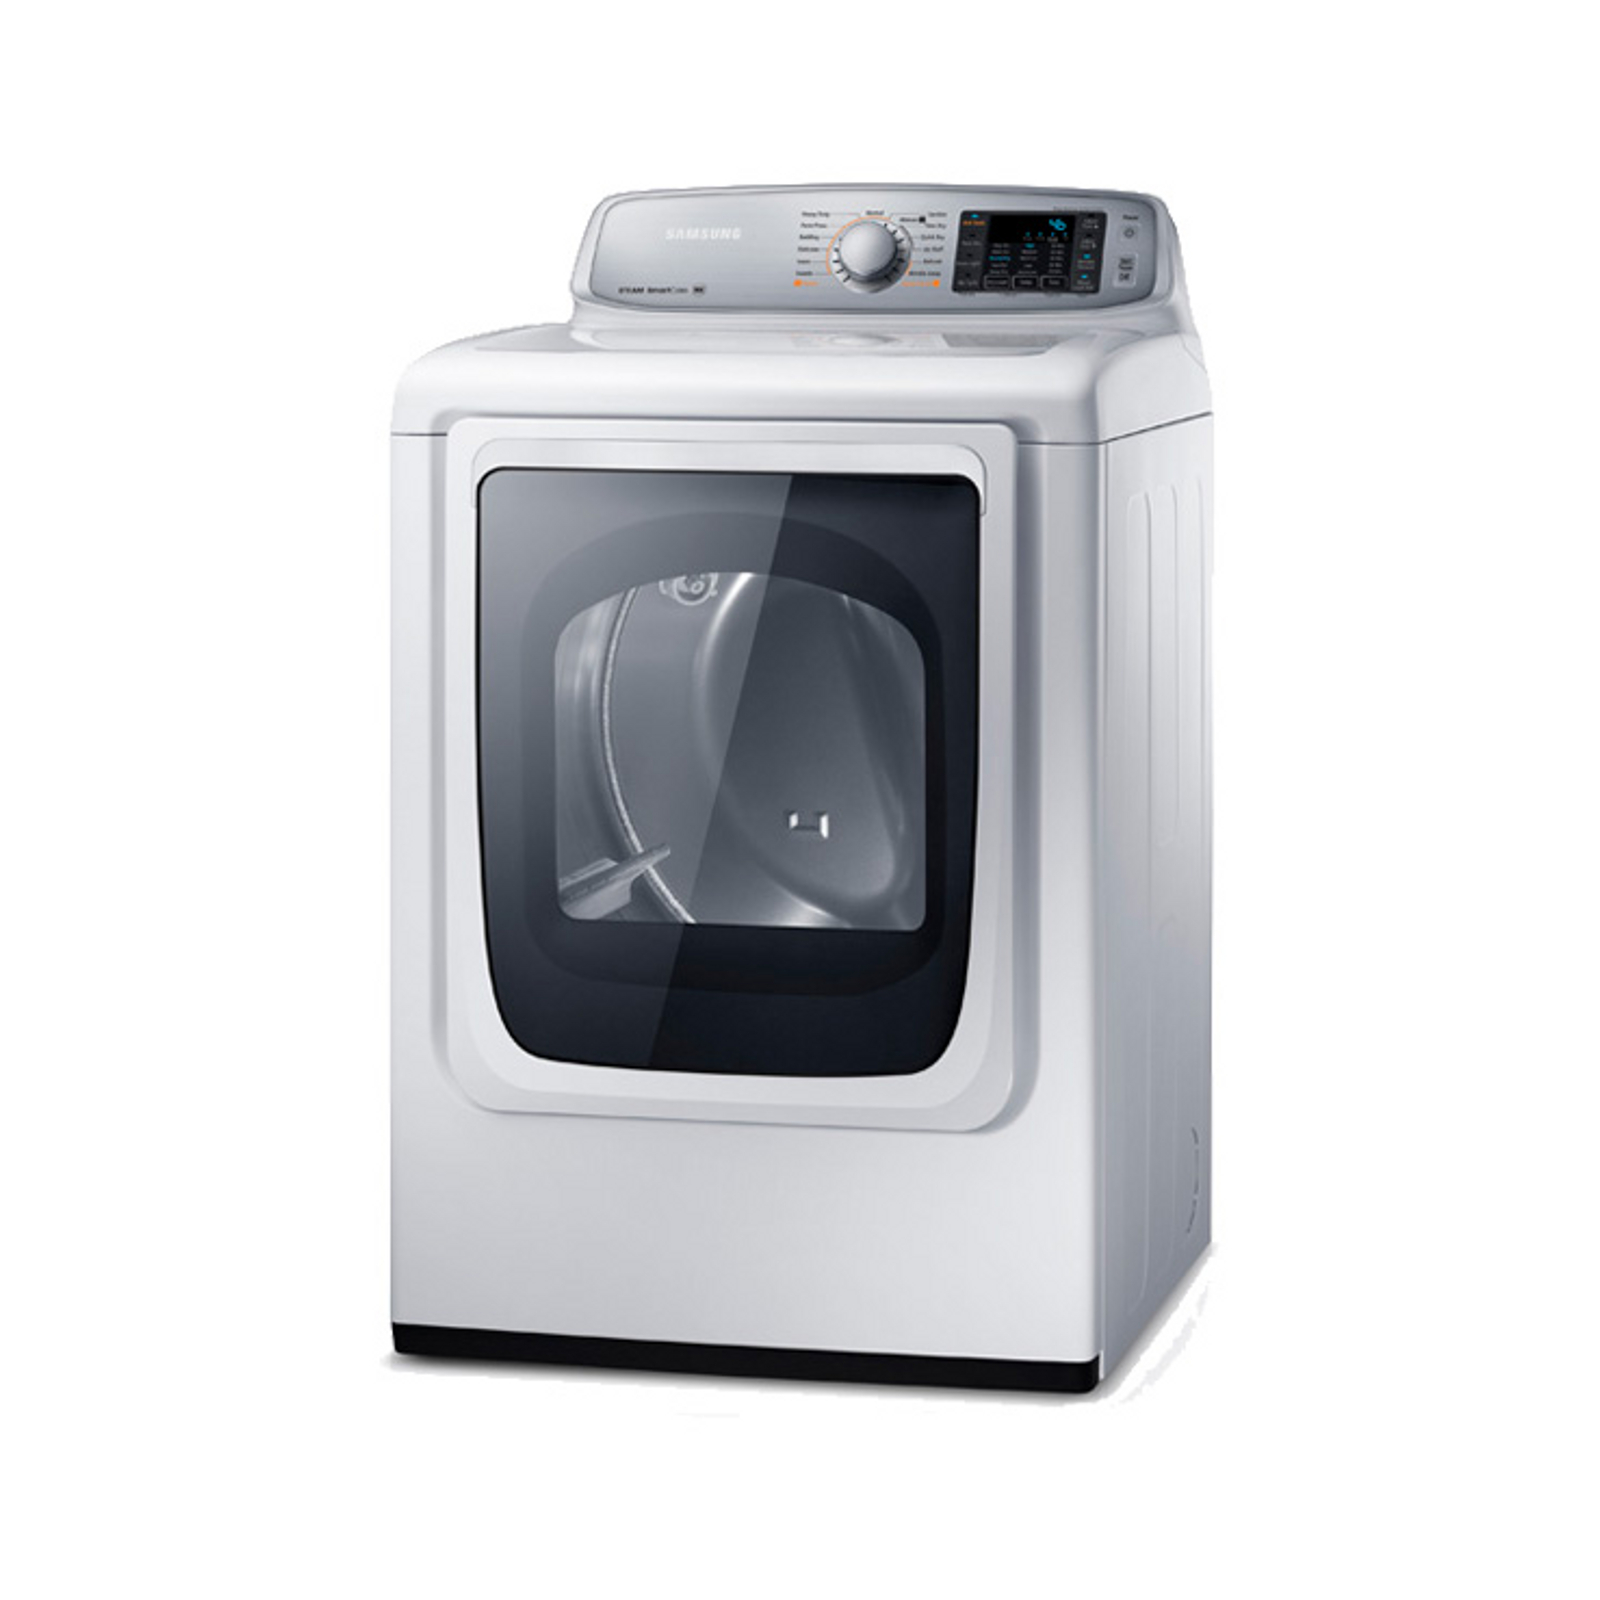 Samsung 7.4 cu. ft. Gas Dryer - Neat White